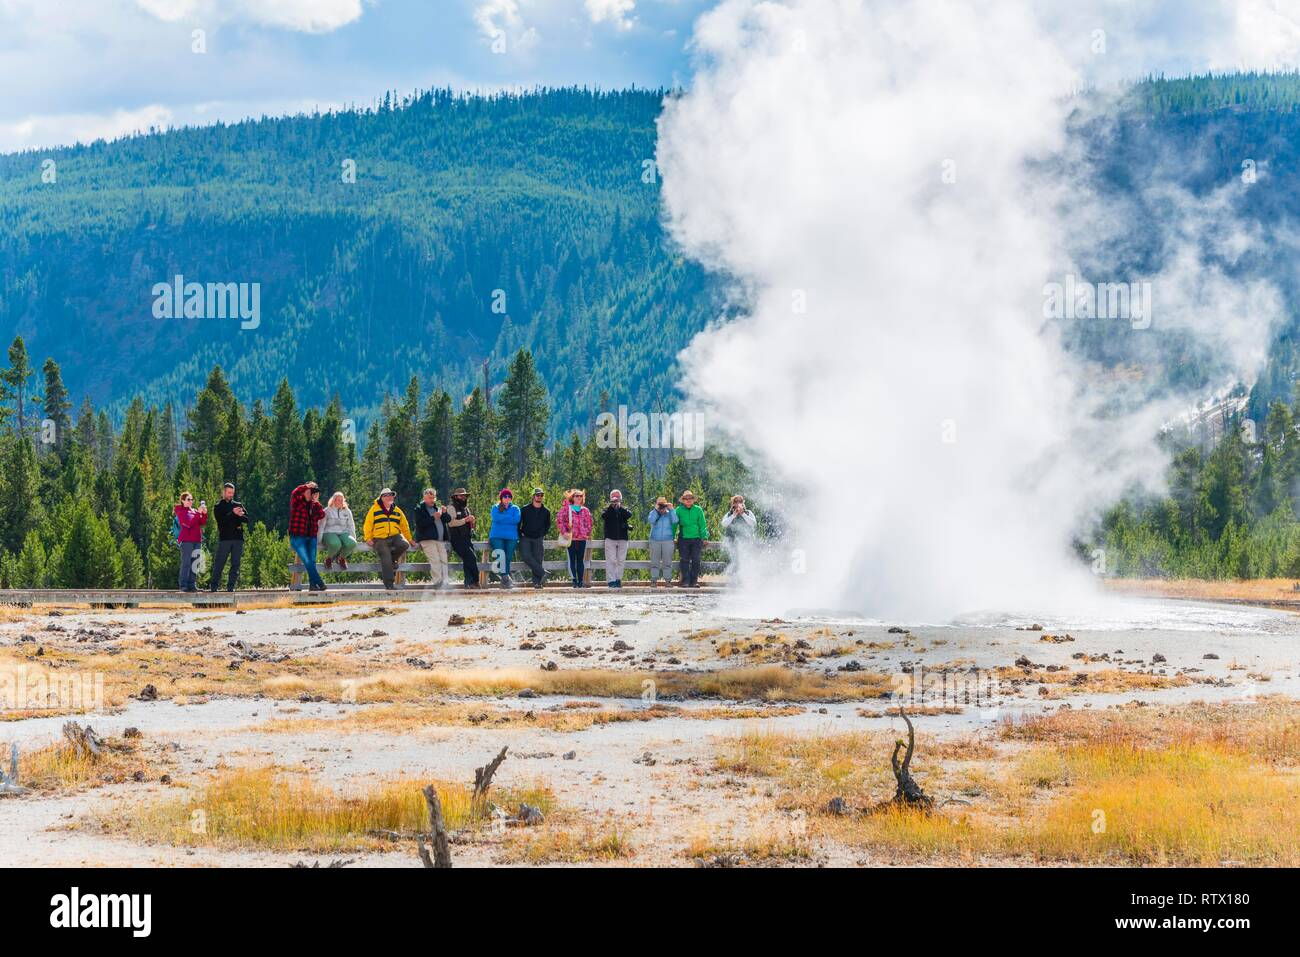 Tourists observe the eruption of the Geyser, Jewel Geyser, Black Sand Basin and Biscuit Basin, Yellowstone National Park - Stock Image